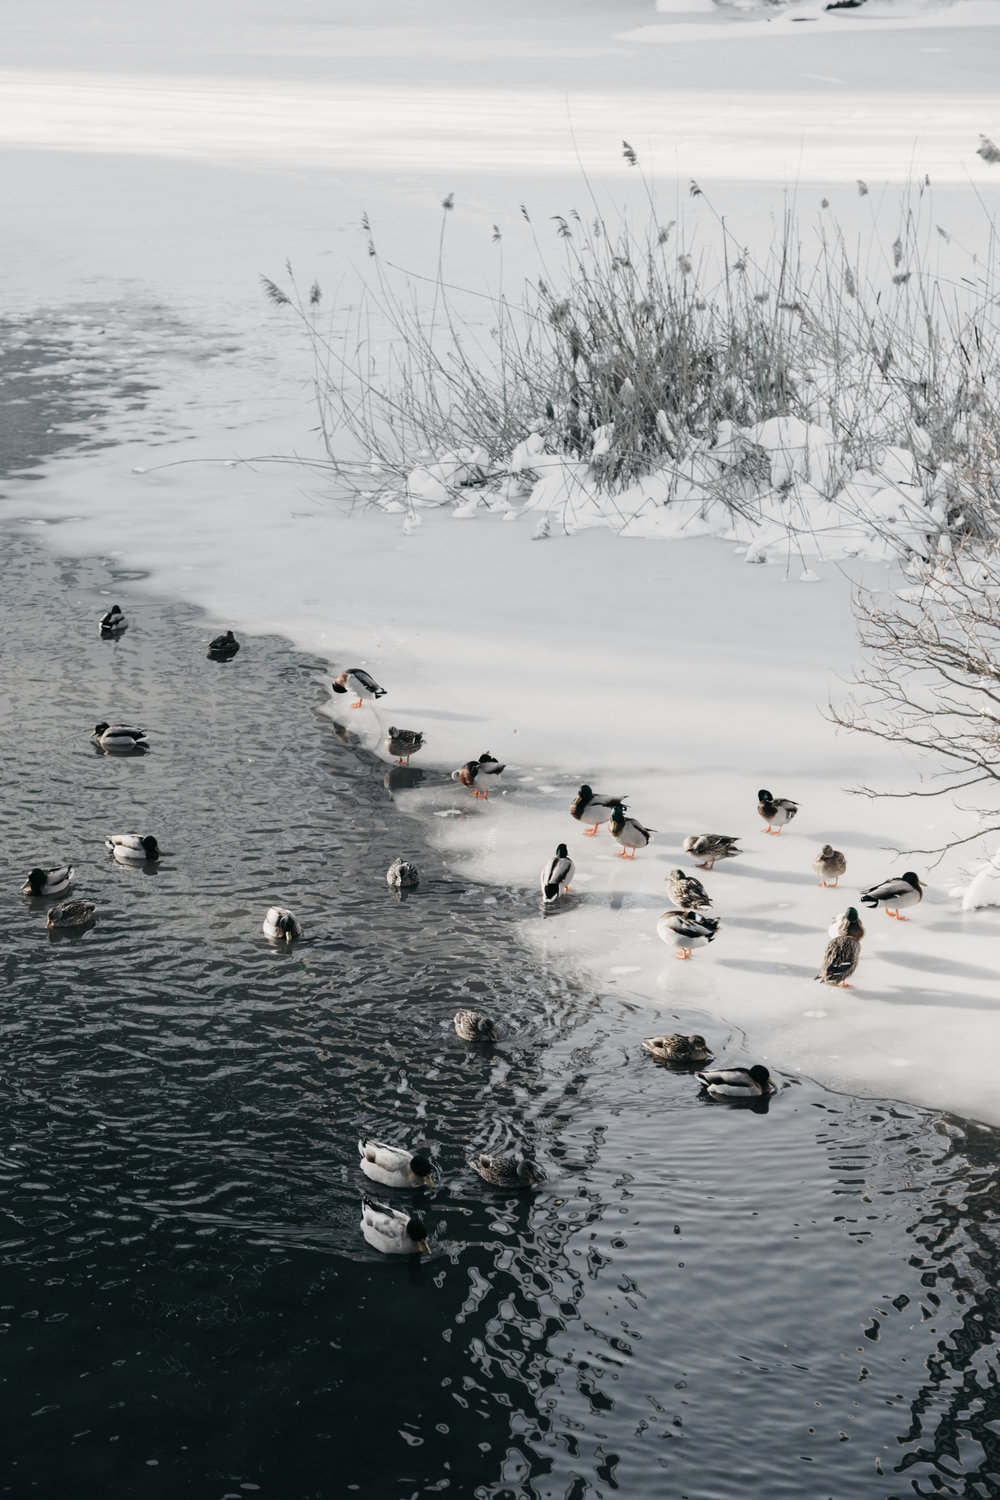 Winter Ducks at The Pond at Central Park Print by NYC Photographer Desiree Leilani